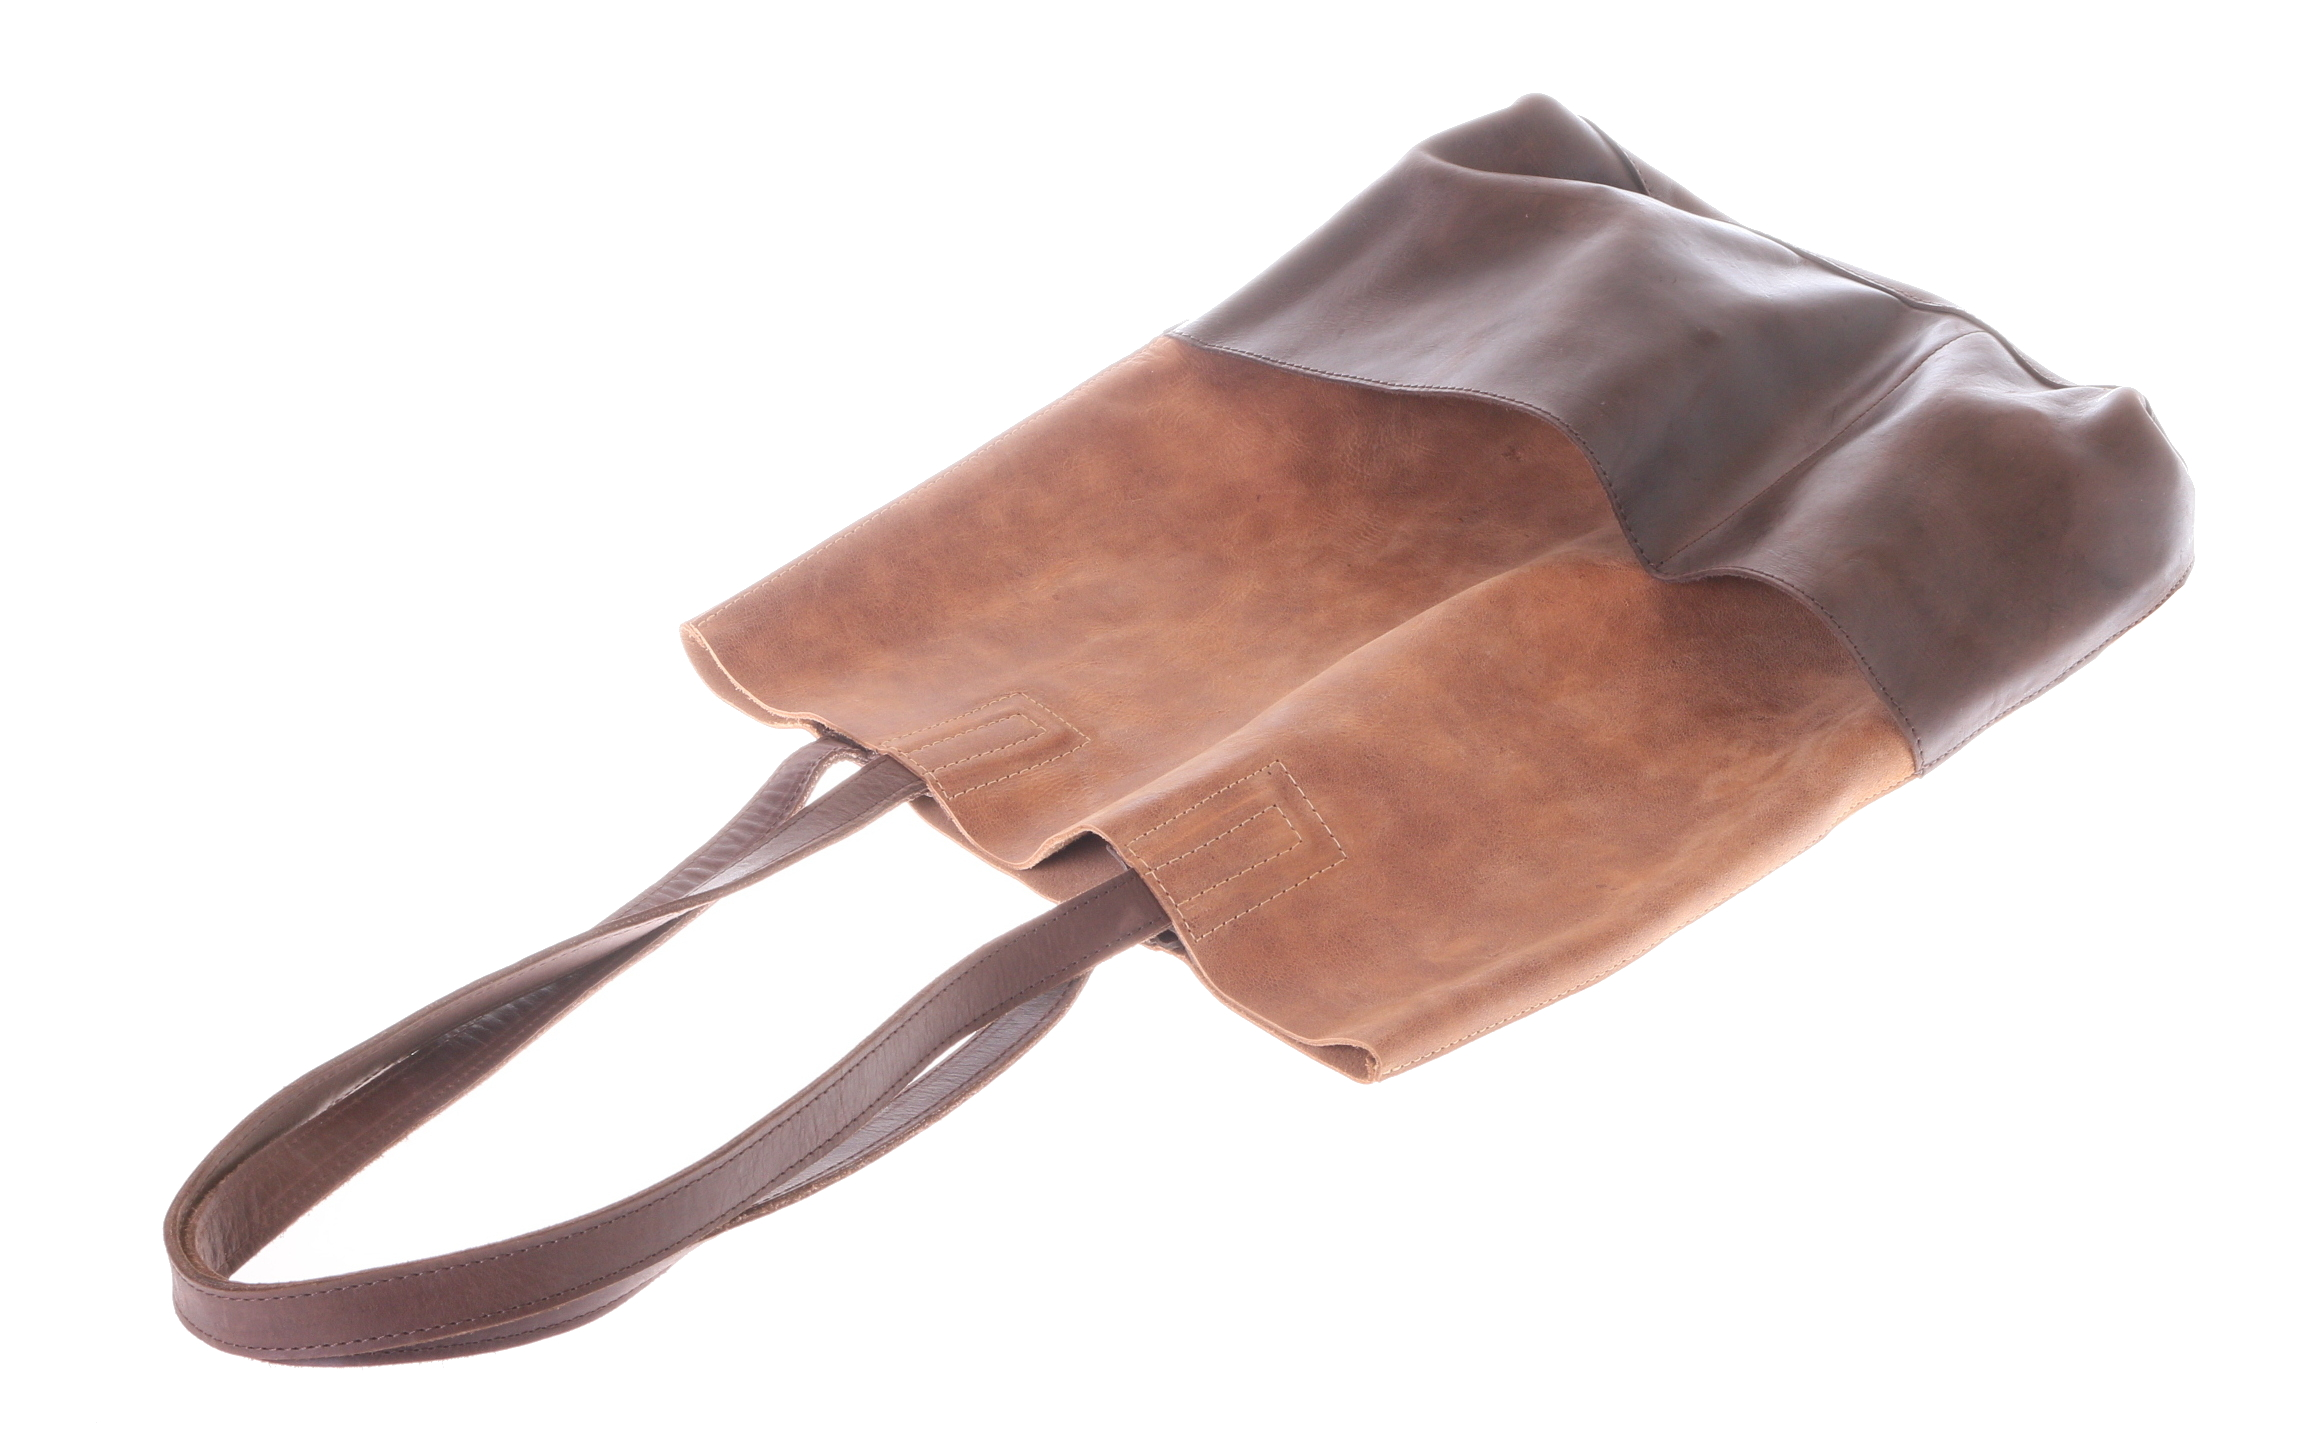 a minimalistic bag with 2 outside pockets